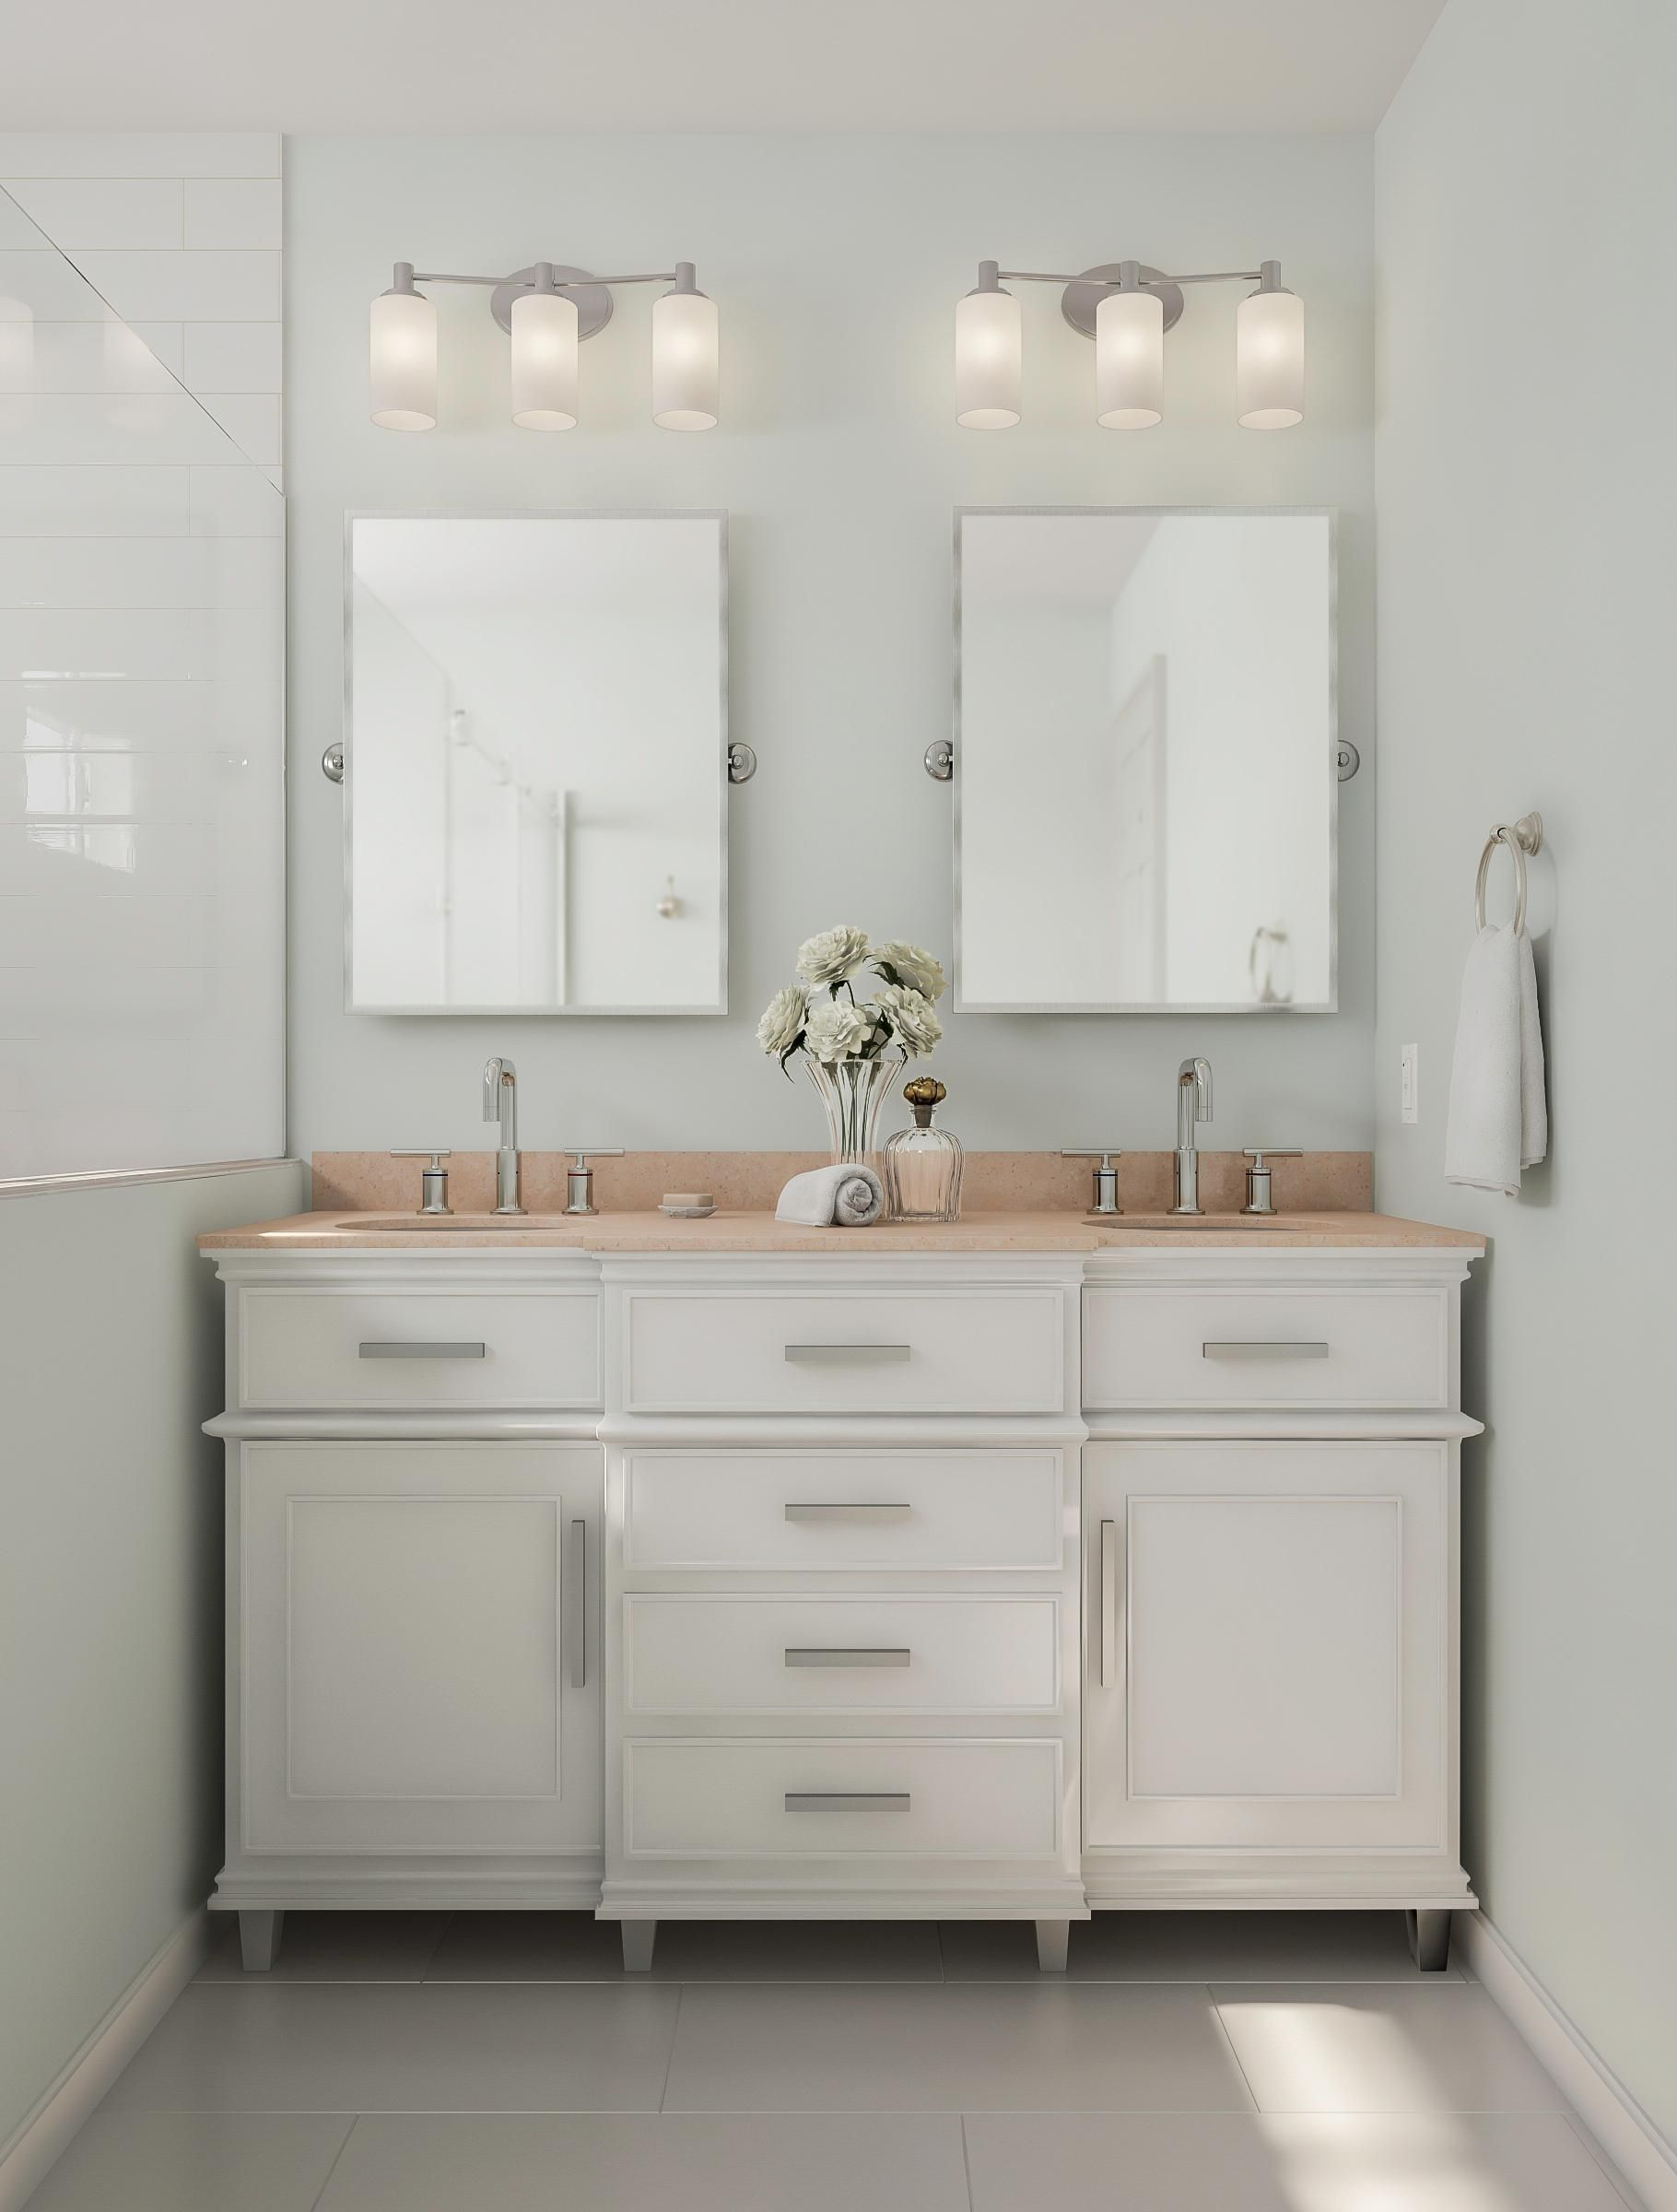 Most Popular Small Bathroom Remodel Ideas On A Budget In 2018 This Beautiful Look Was Created With Custom Bathroom Bathrooms Remodel Modern Farmhouse Bathroom